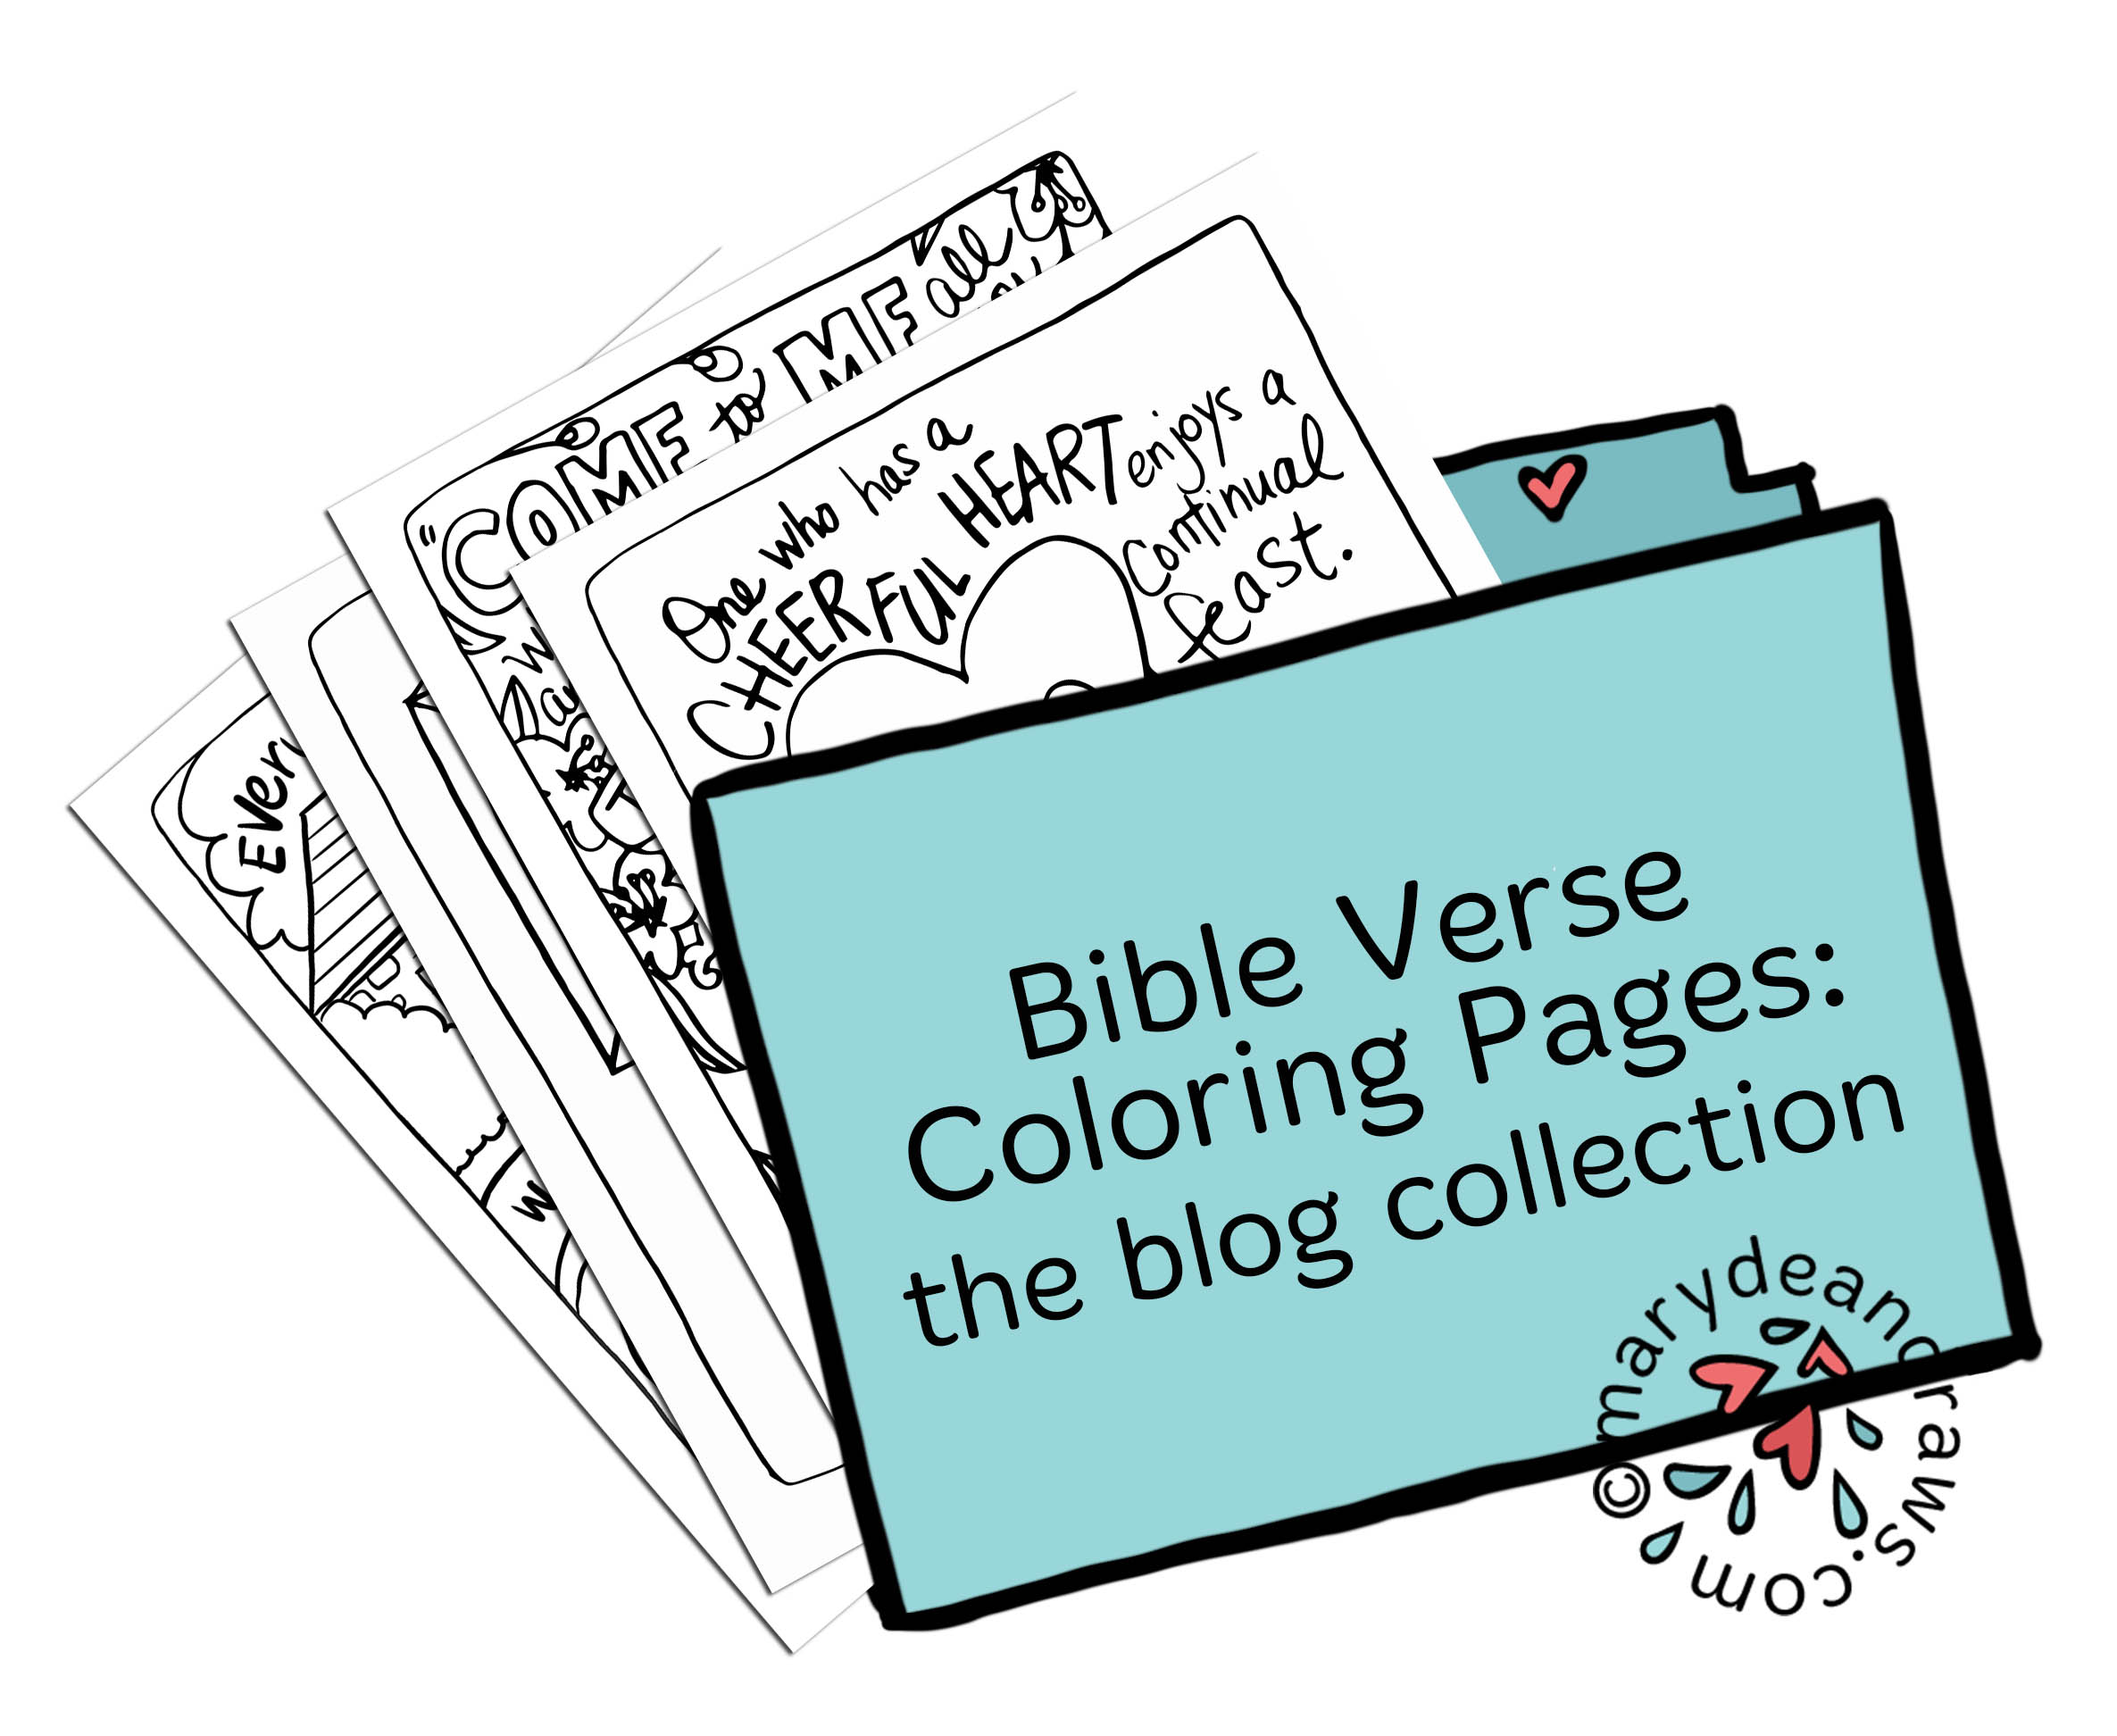 Printable Bible Verse Coloring Pages Blog Collection 64 Pages